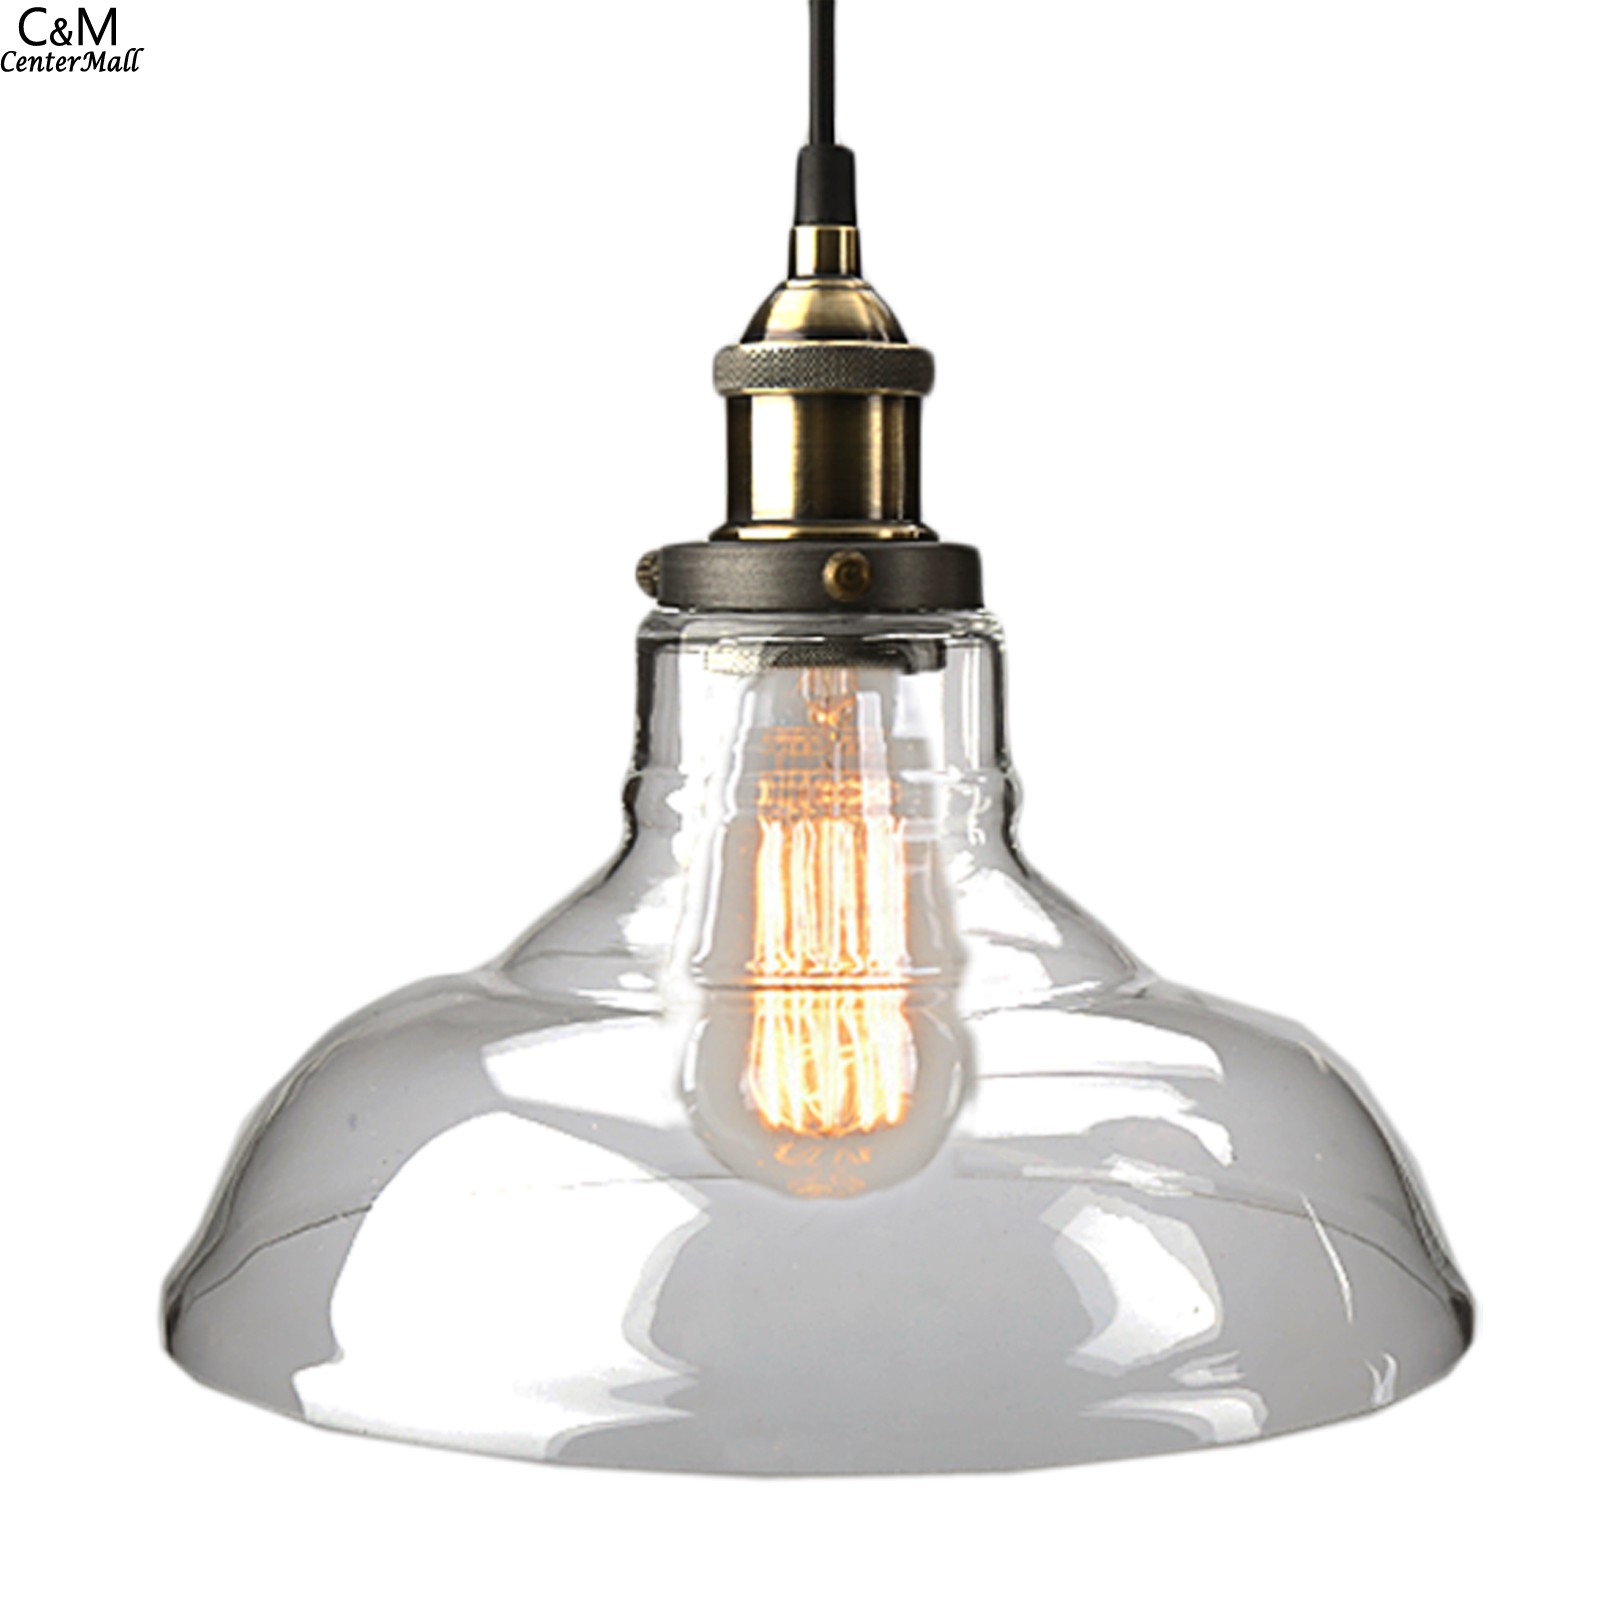 lights bulb rubi ie pendant en room dining light